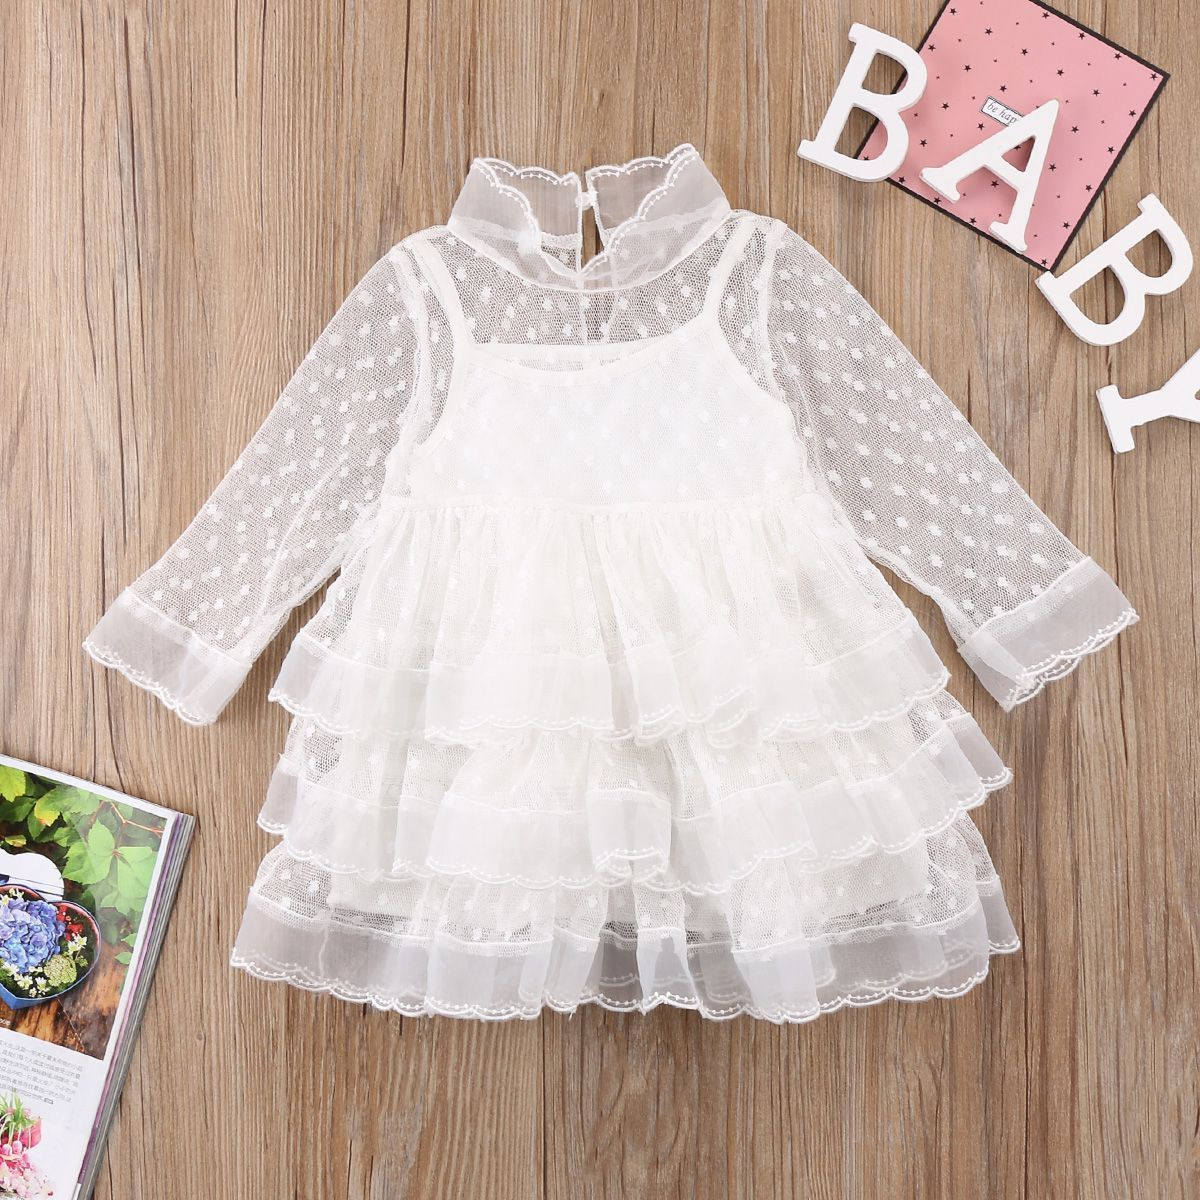 Cute kids baby girl princess white dresses long sleeve party dot